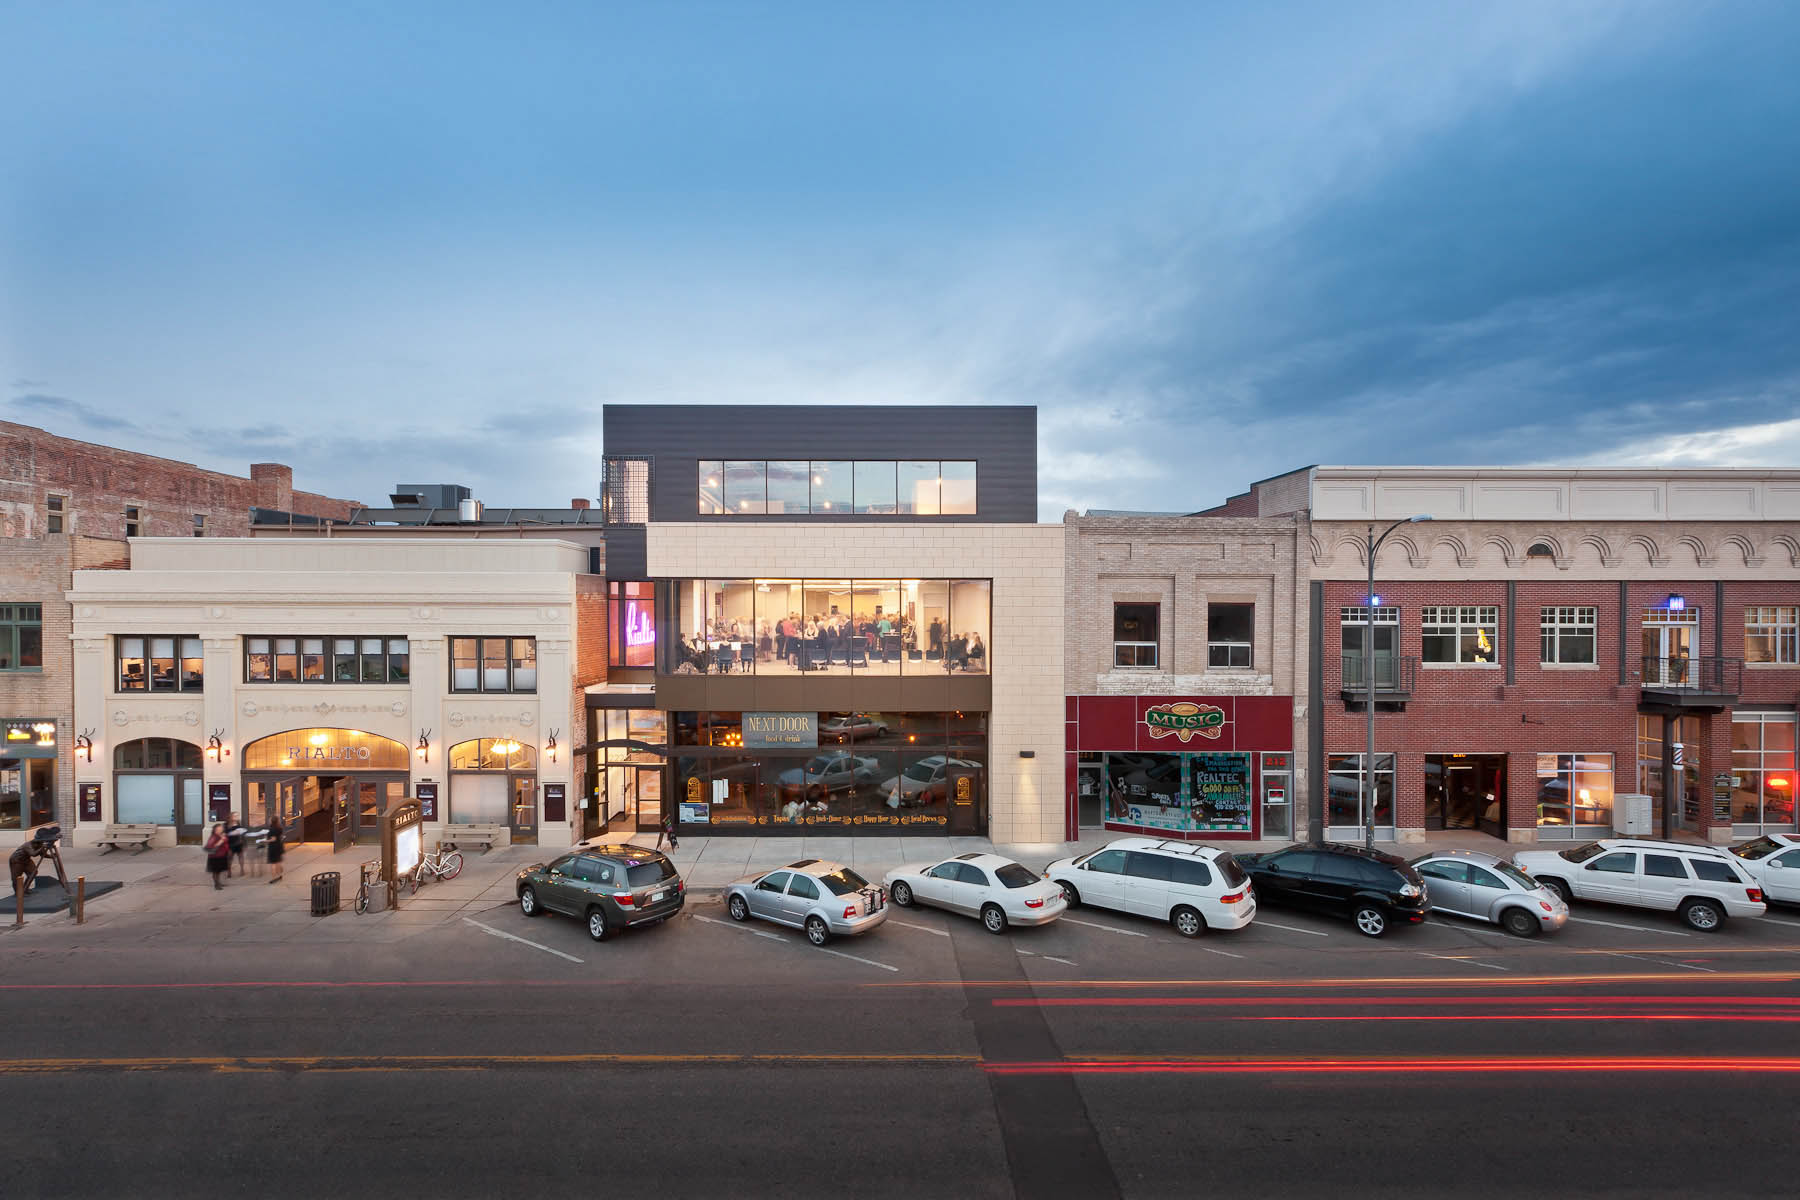 Exterior architectural elevation photo of RB+B Architects' Rialto Theater Renovation in Loveland, CO